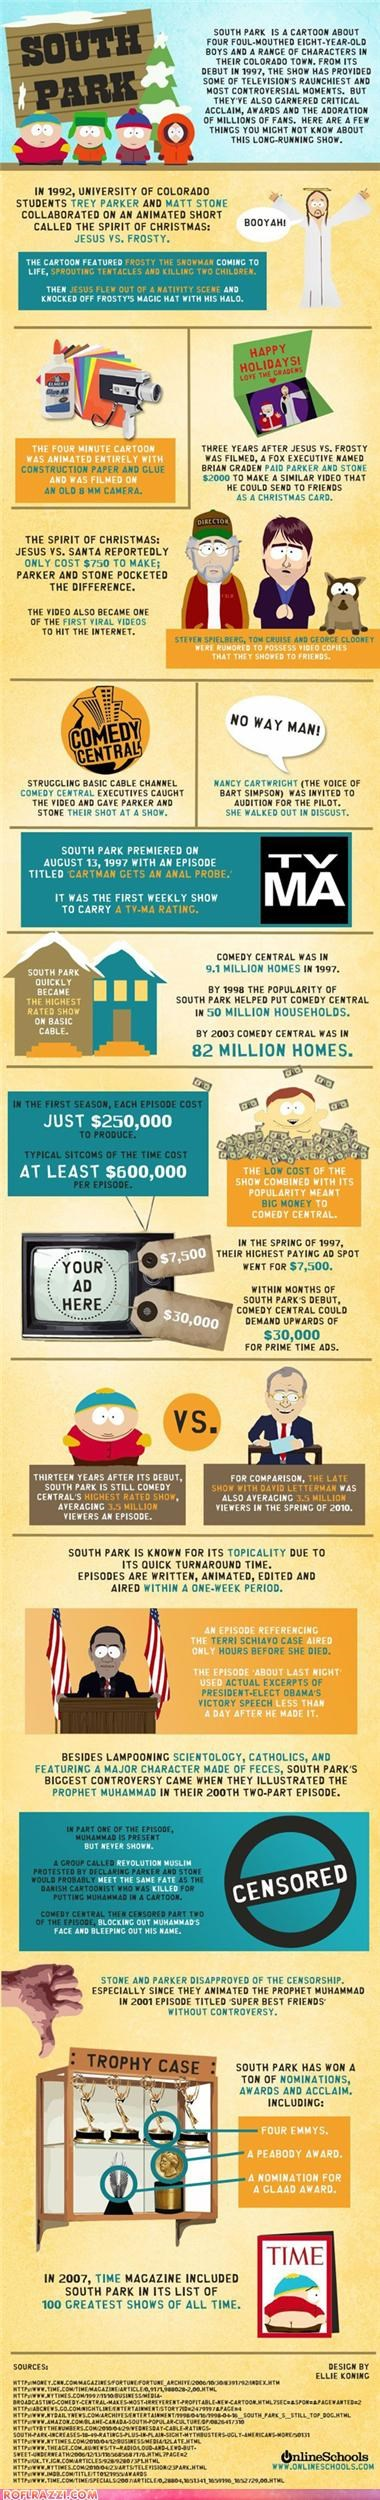 animation cool infographic South Park - 5014282496